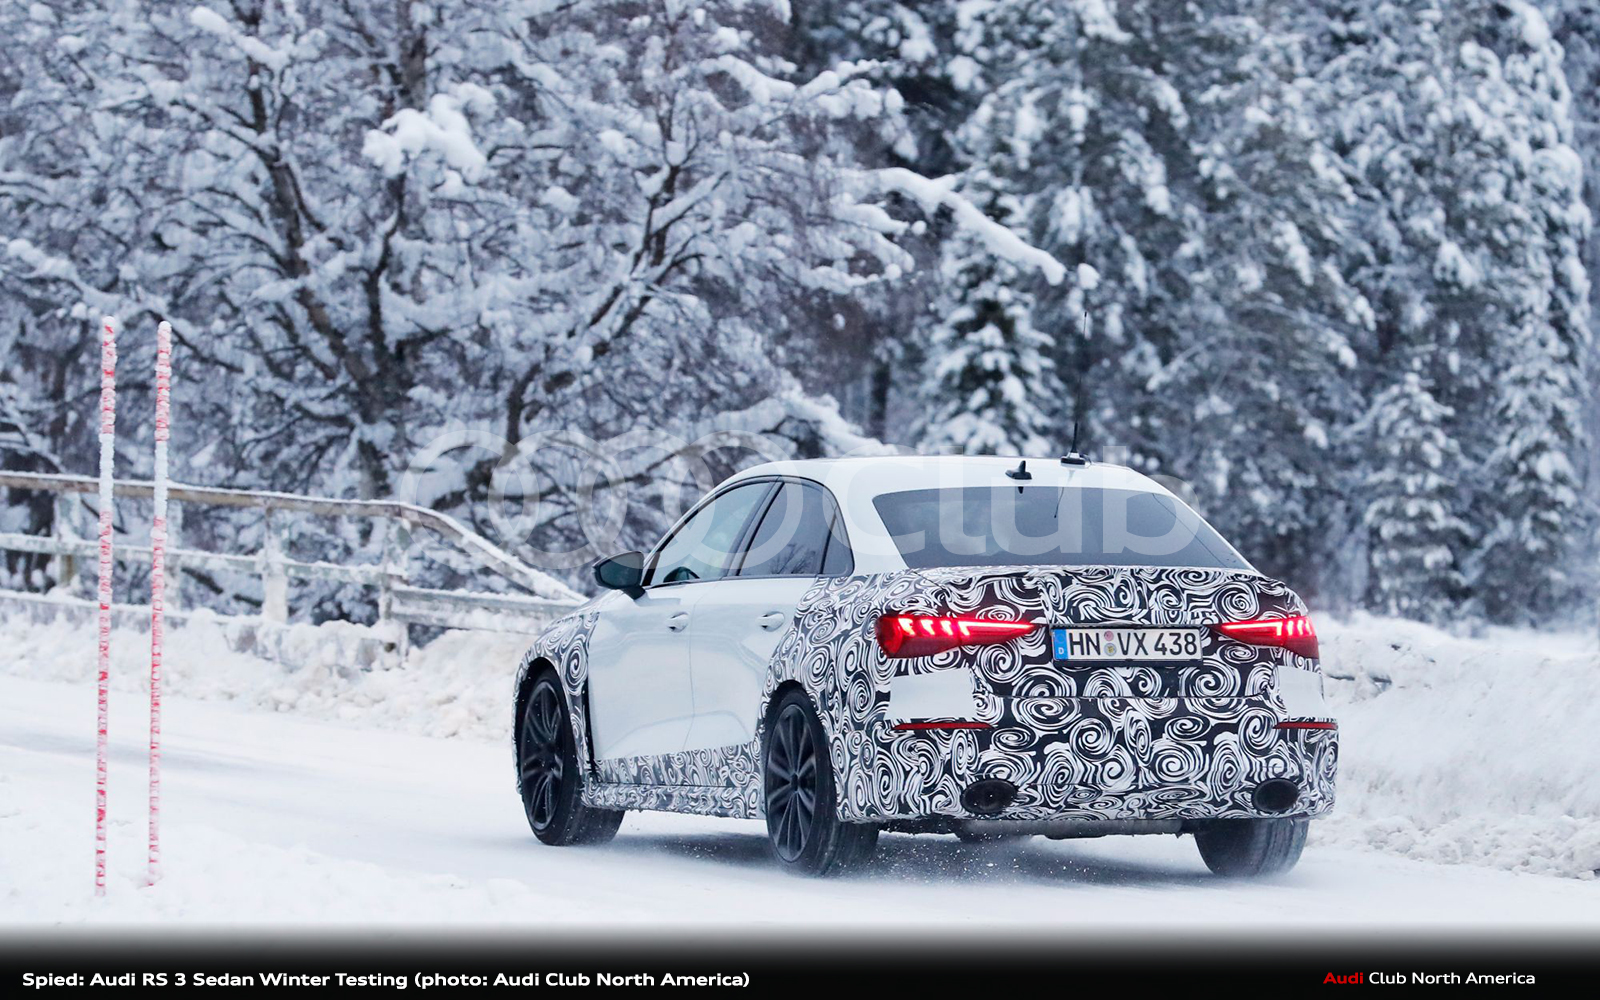 Spied: Audi RS 3 Sedan Winter Testing